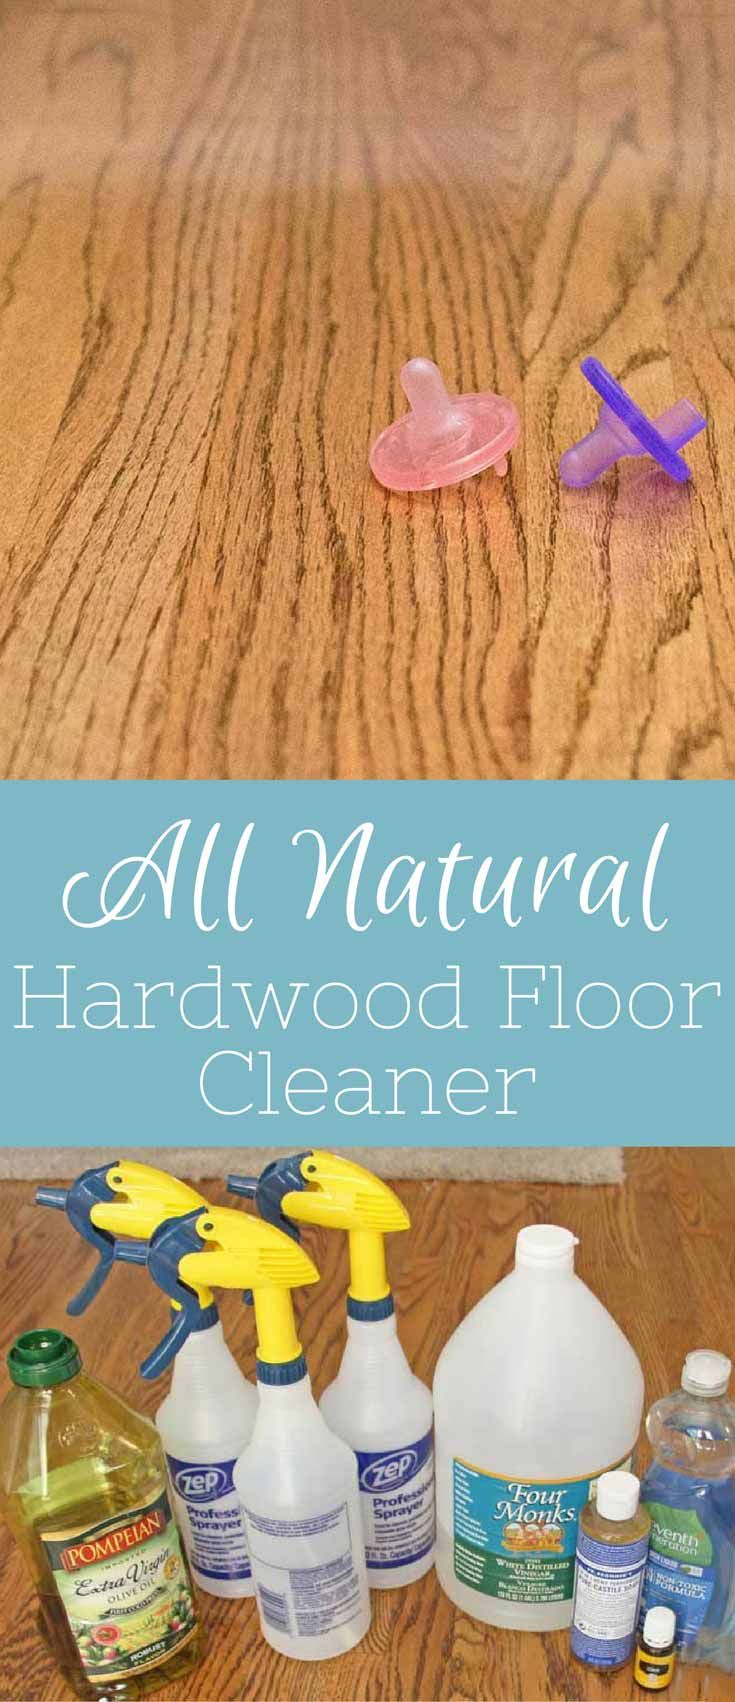 These 3 All Natural Homemade Hardwood Floor Cleaners will tackle all your cleaning needs. Each recipe is safe and non toxic for the little ones. via @foodfunkids